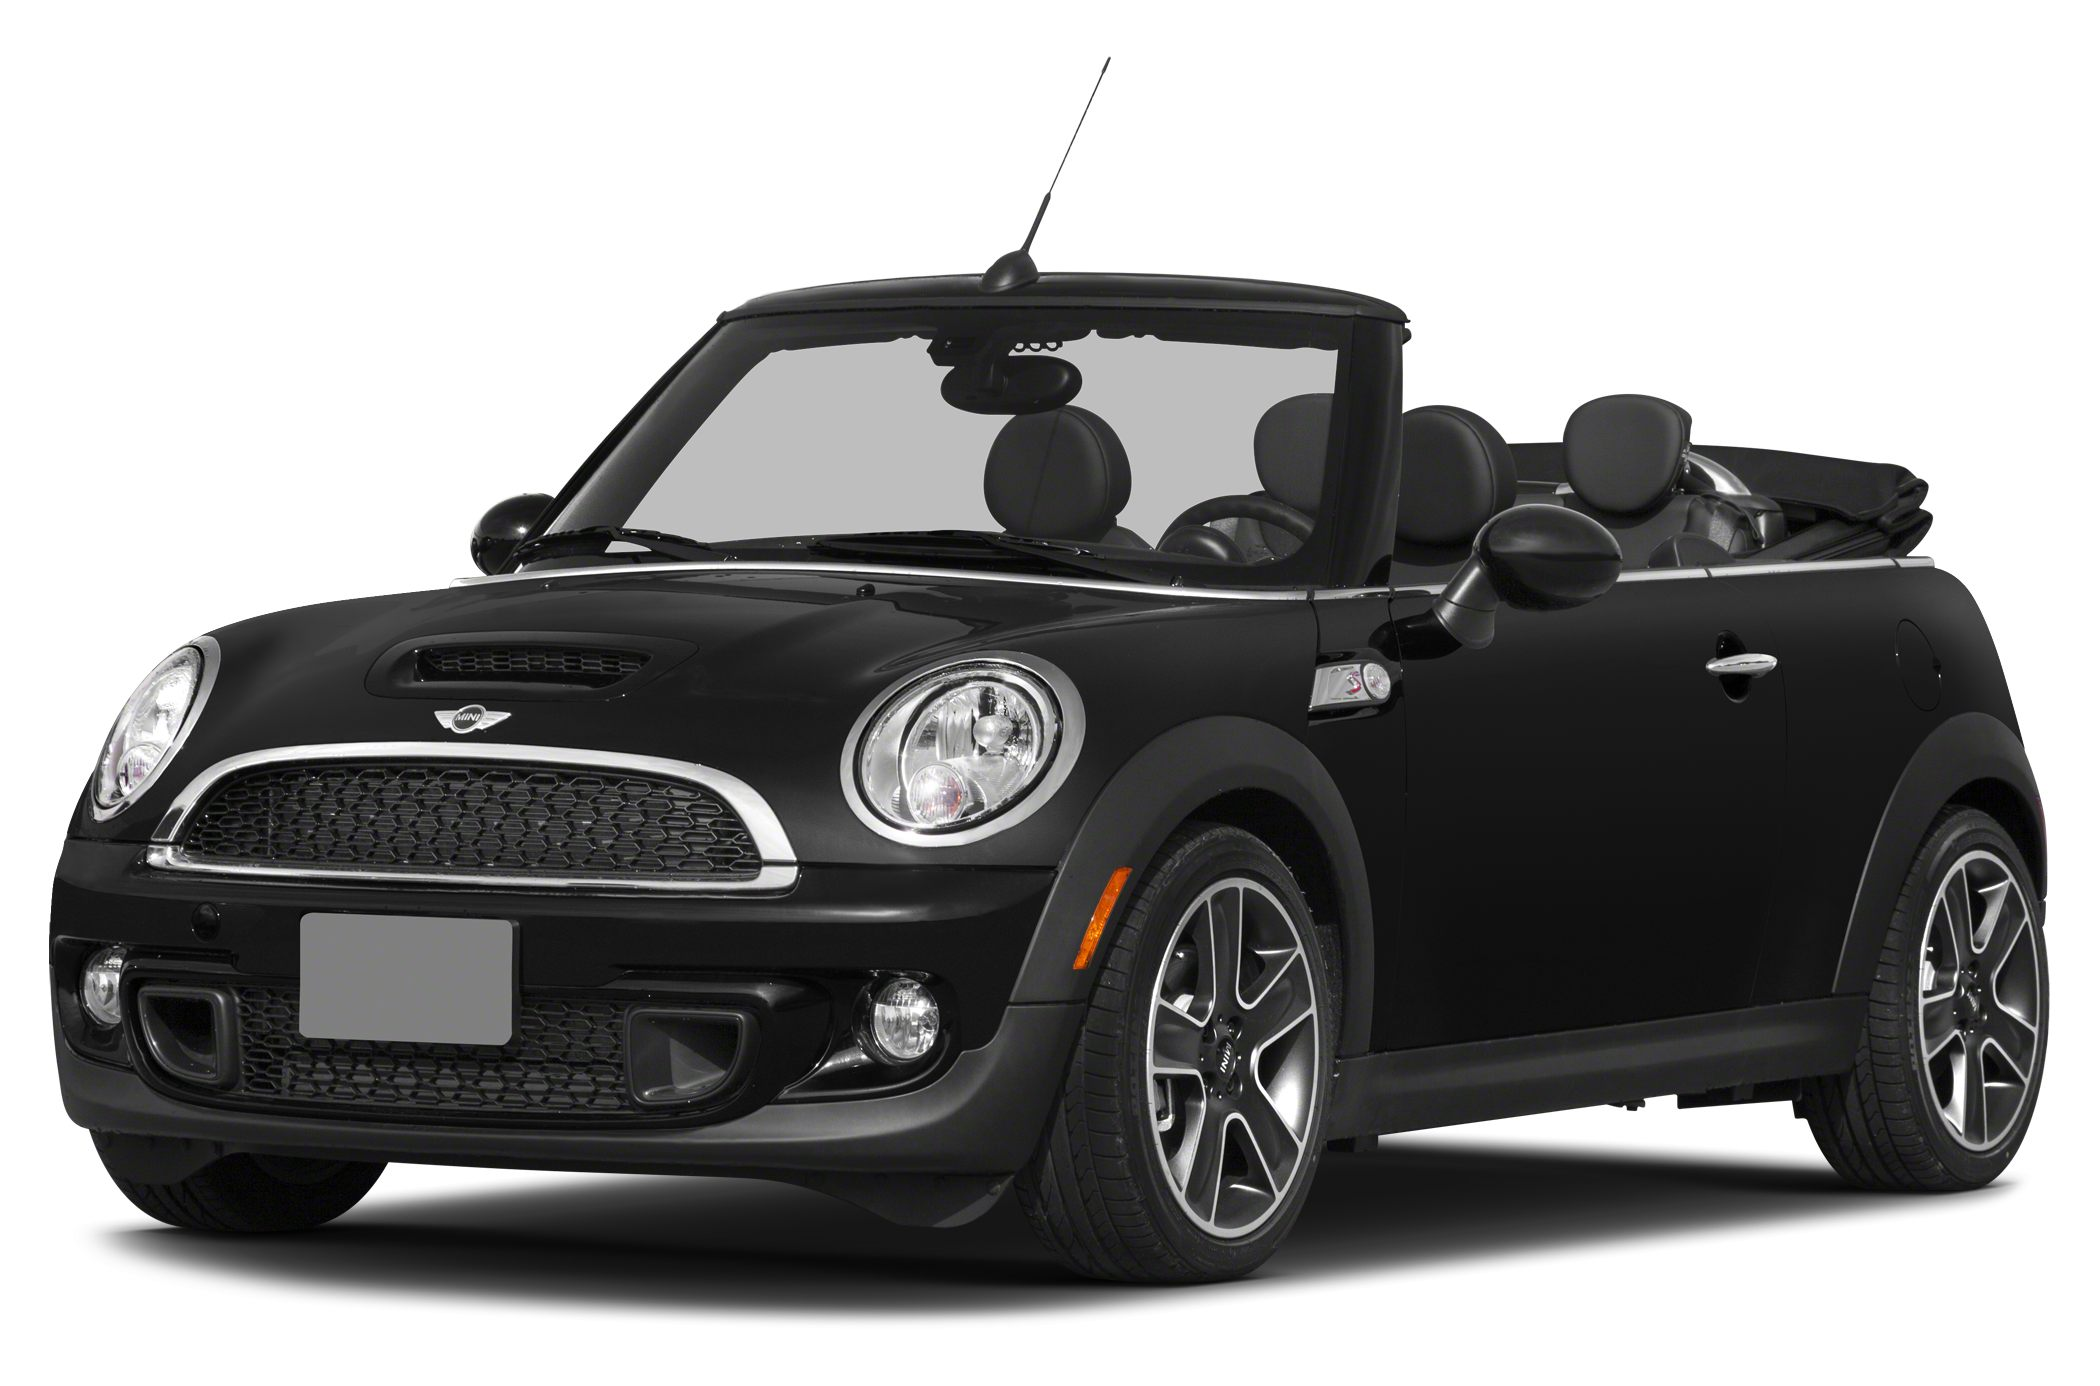 2015 MINI Convertible Cooper S Convertible for sale in Fort Lauderdale for $32,495 with 4 miles